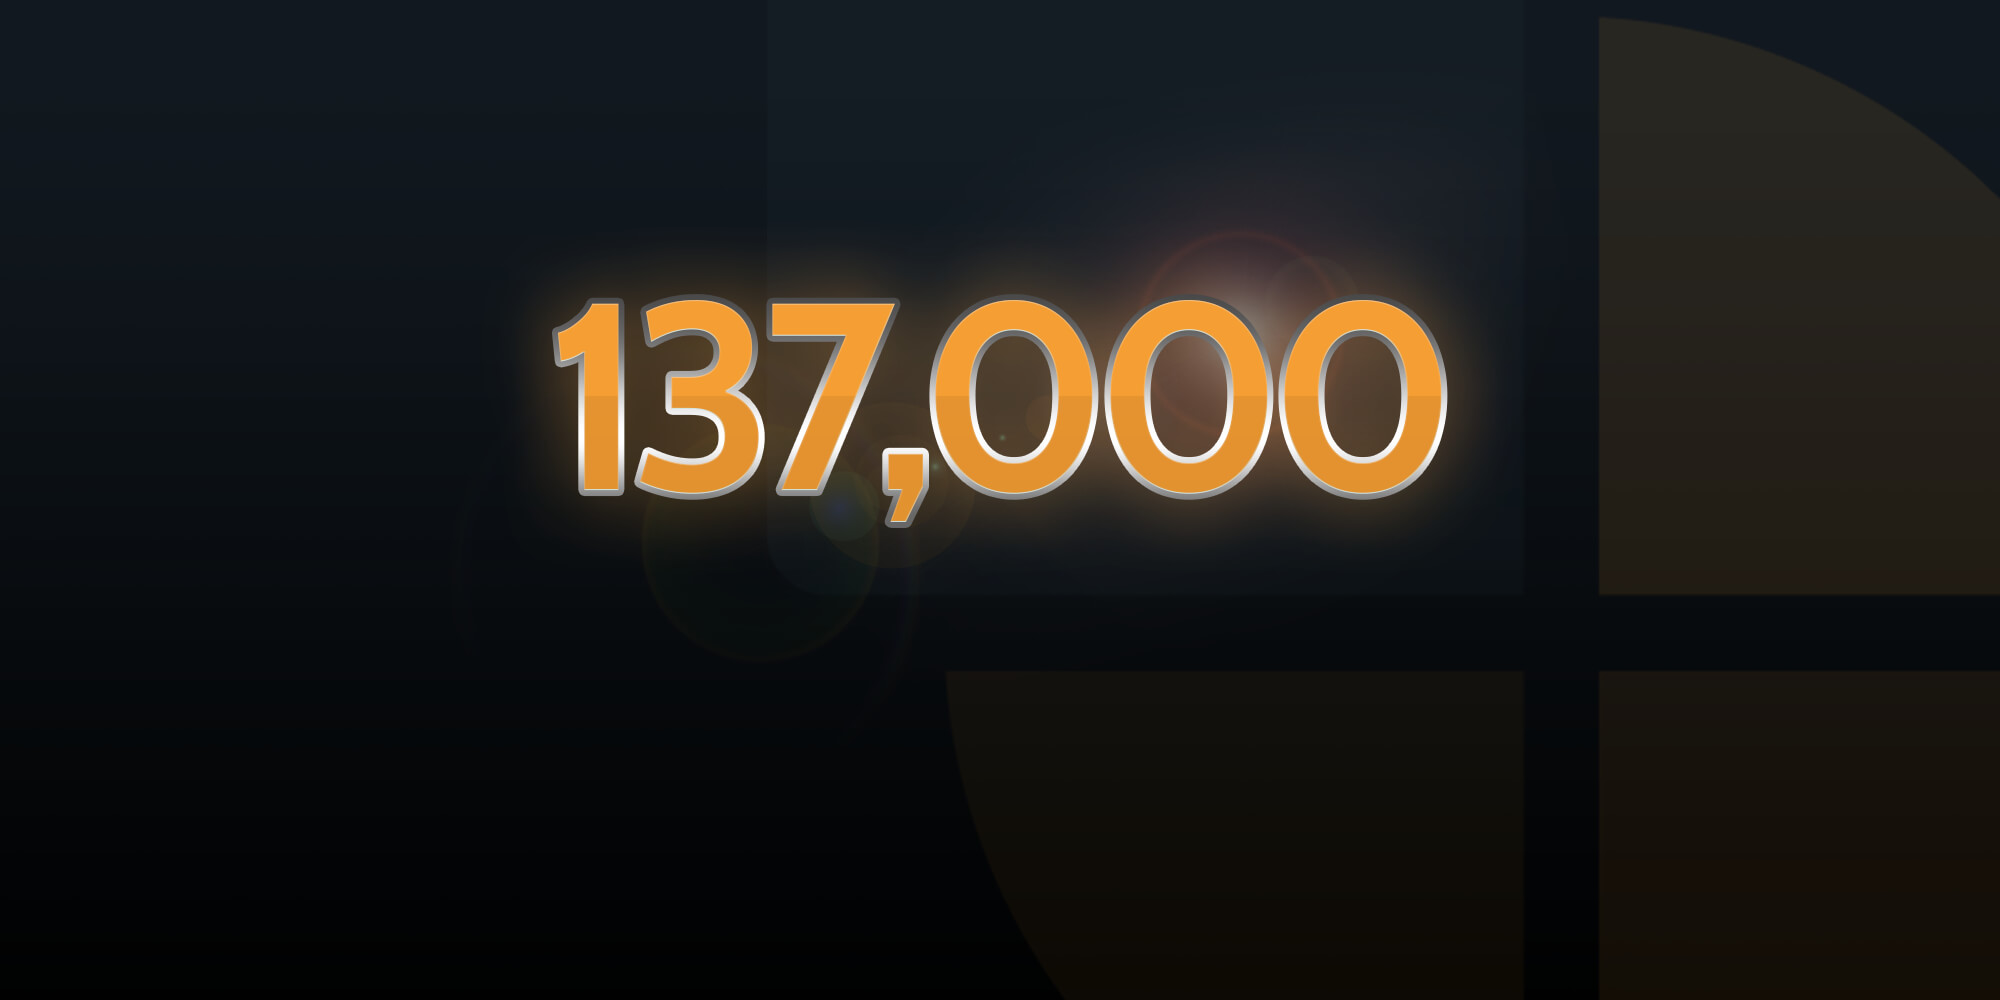 NEP Graphic representing that 137000 users access the platform in March 2021 - The image is a black background with orange text.